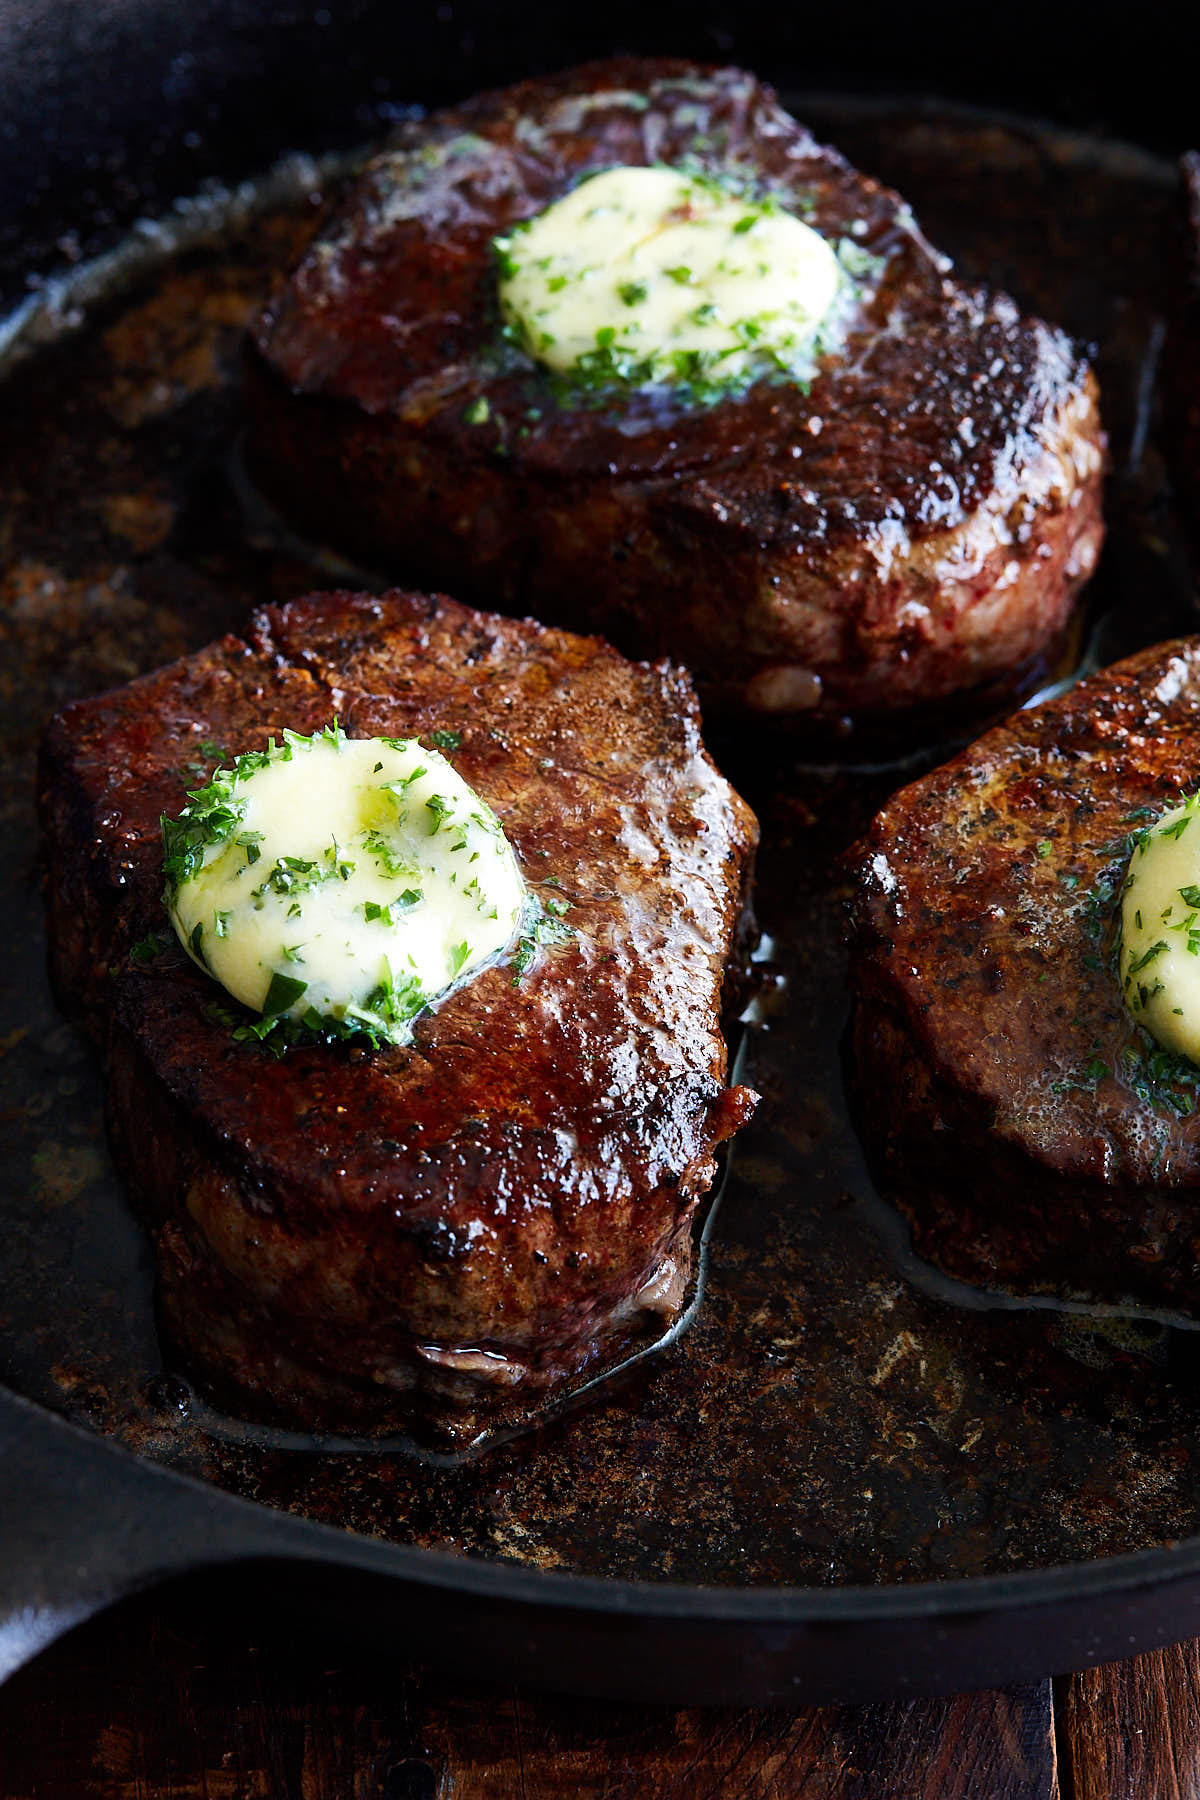 Beef tenderloin is the most tender portion of a beef. Often called Filet Steak, Filet Mignon and Filet of Beef. A tenderloin steak has very little marbled fat and is a very lean cut of steak. The reason it is very tender is because it sources from a muscle that gets very little exercise.